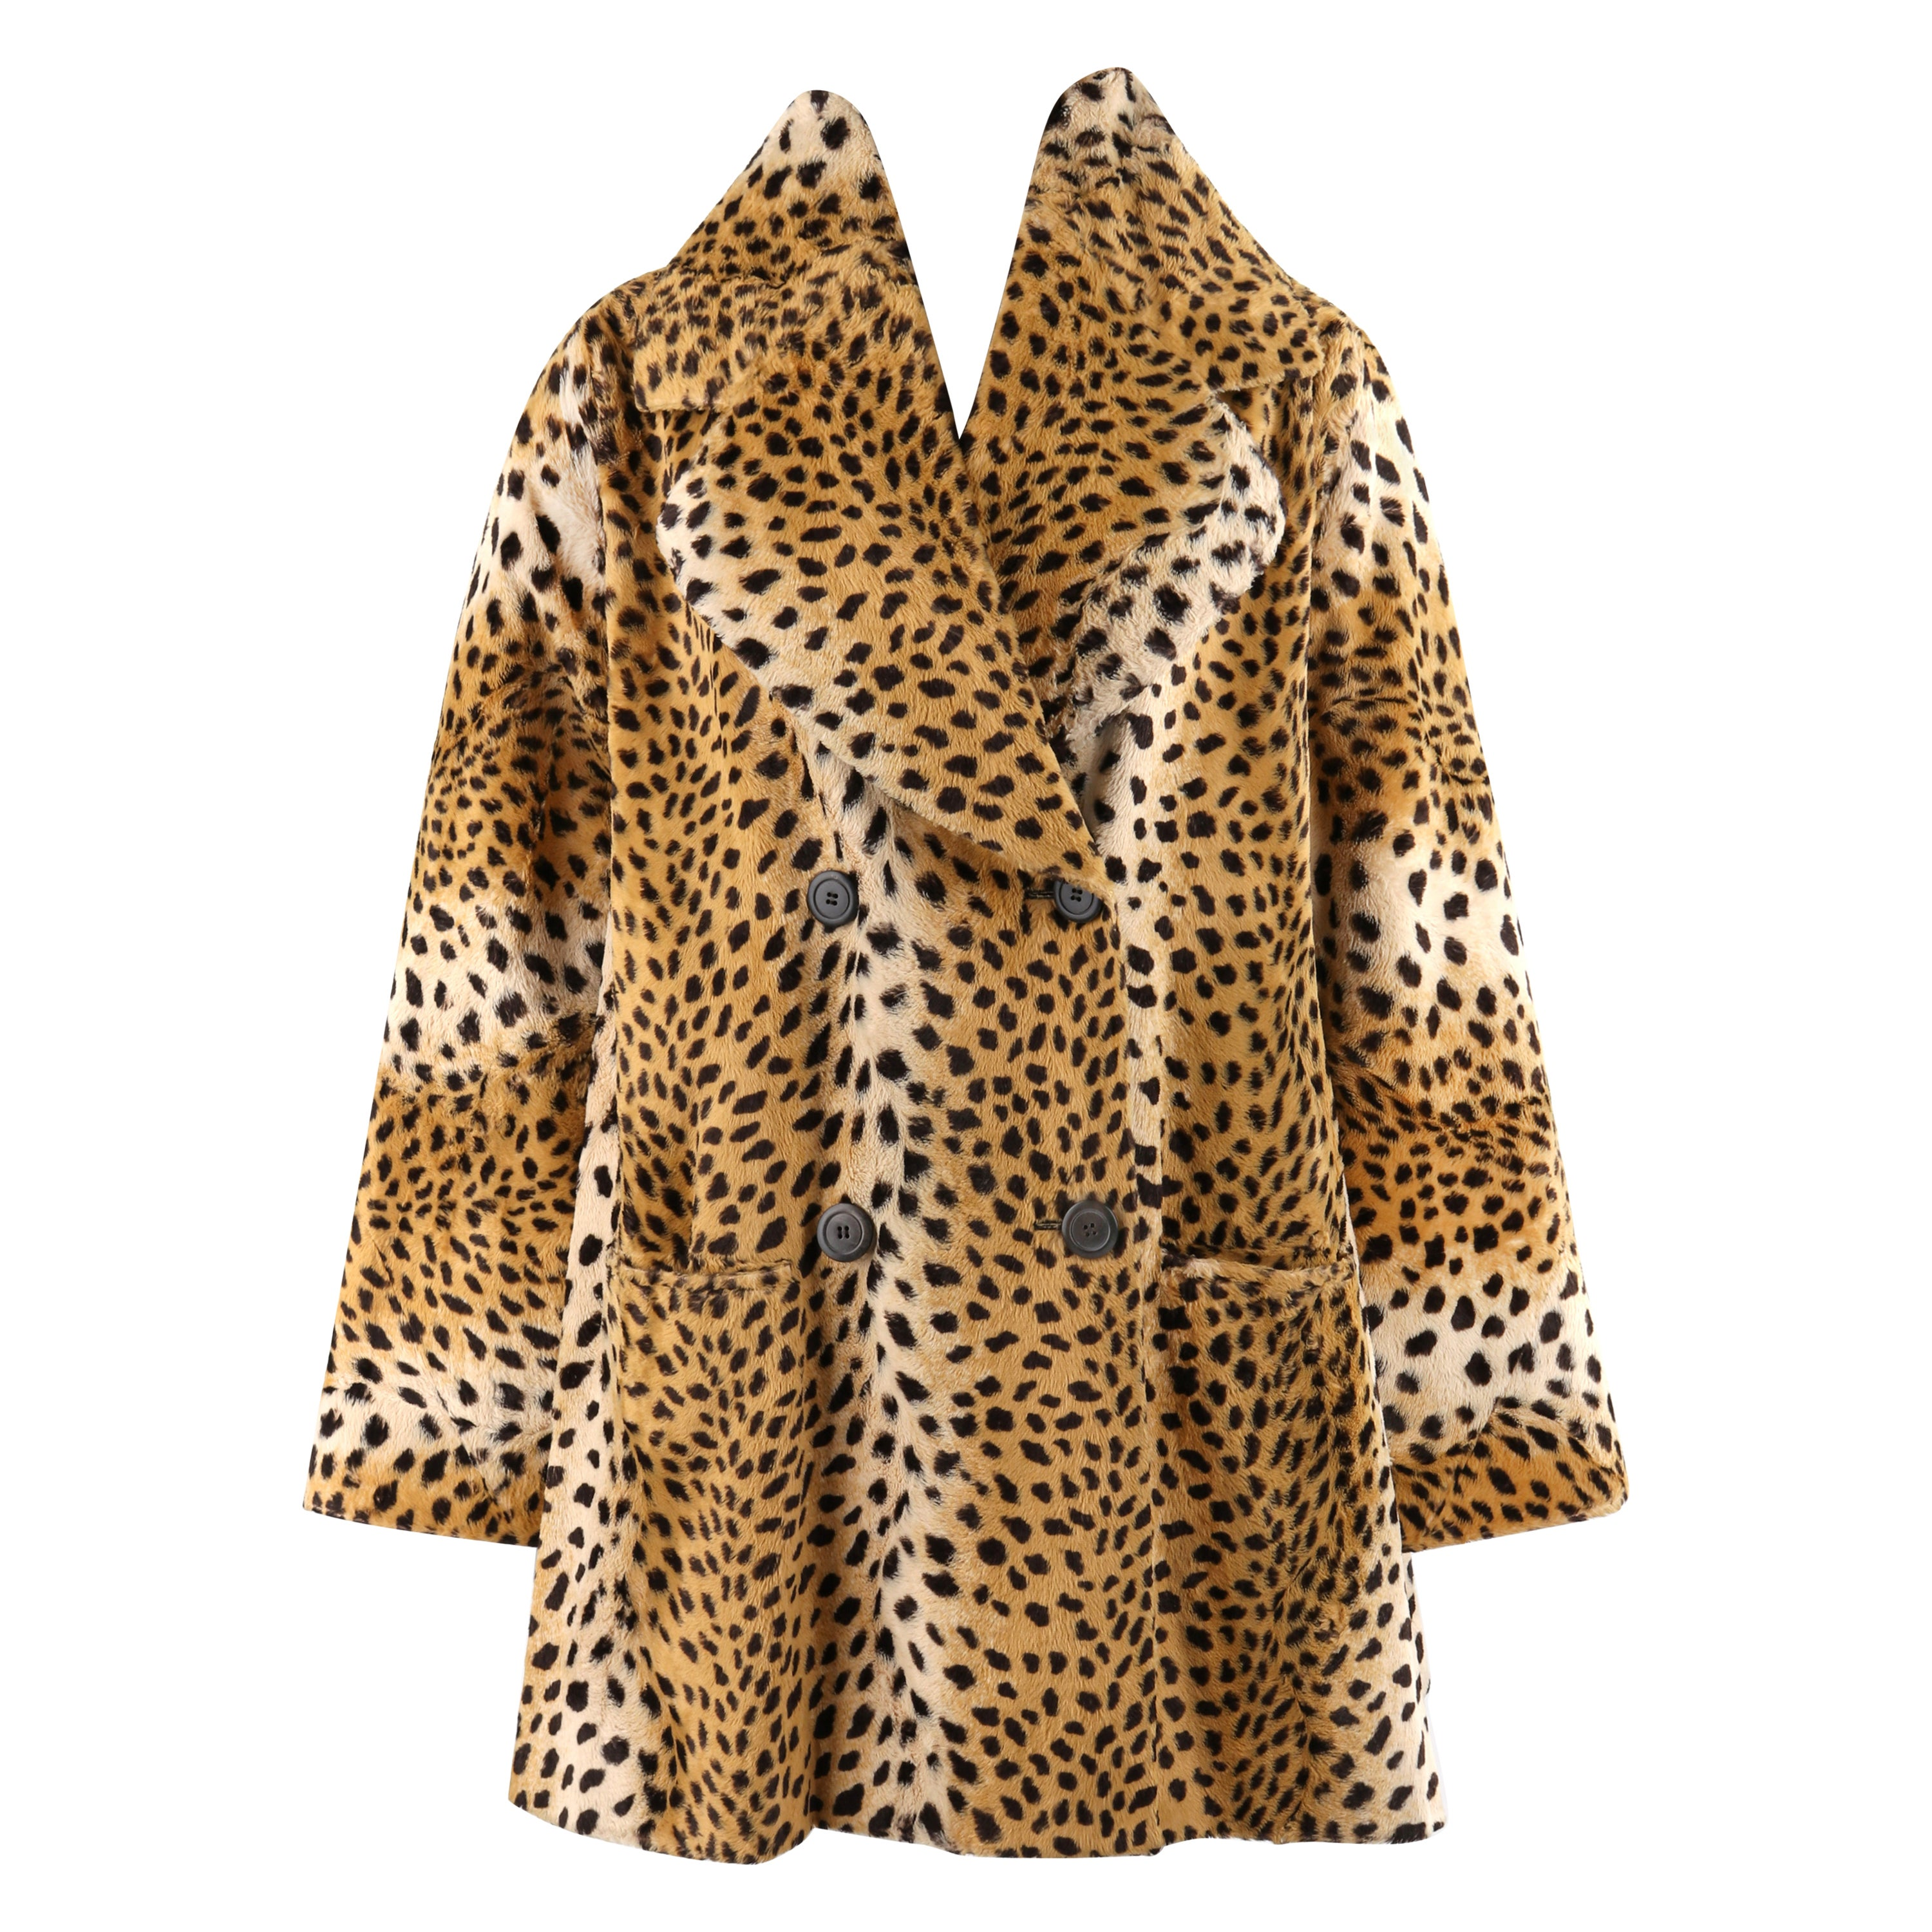 GIVENCHY COUTURE A/W 1997 ALEXANDER McQUEEN Cheetah Print Faux Fur Paneled Coat